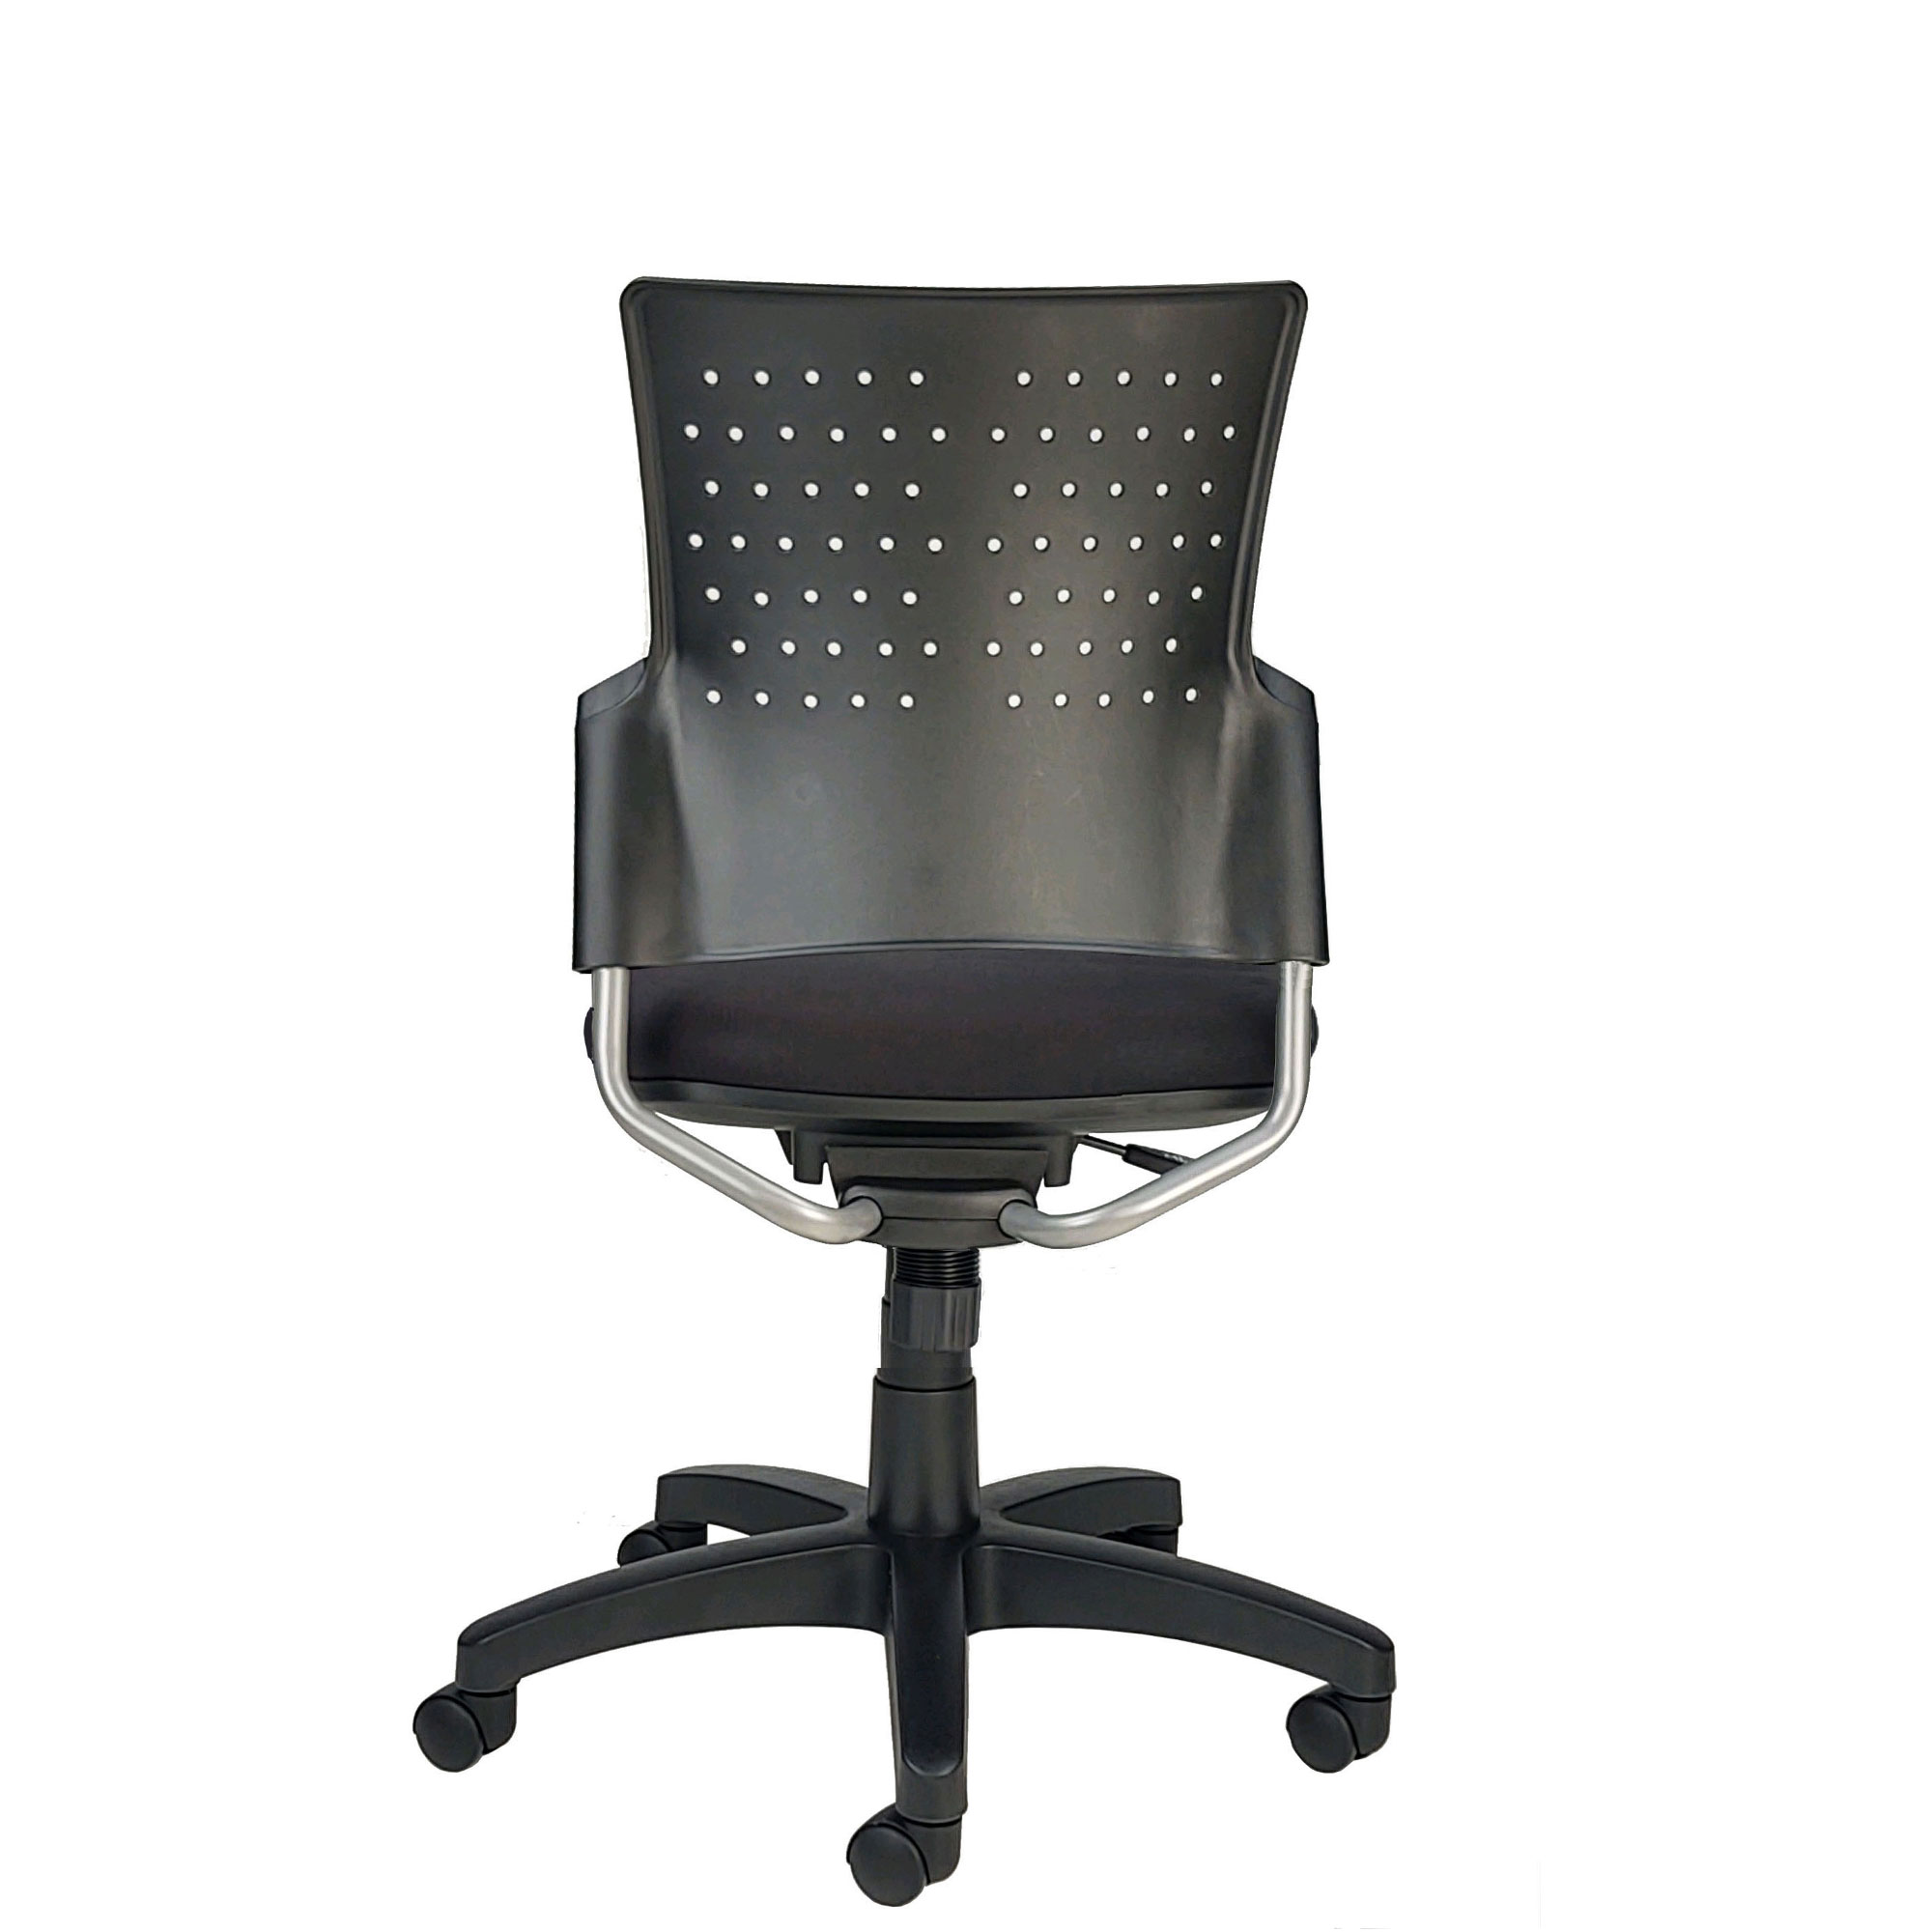 Small Black Chair For Home Office